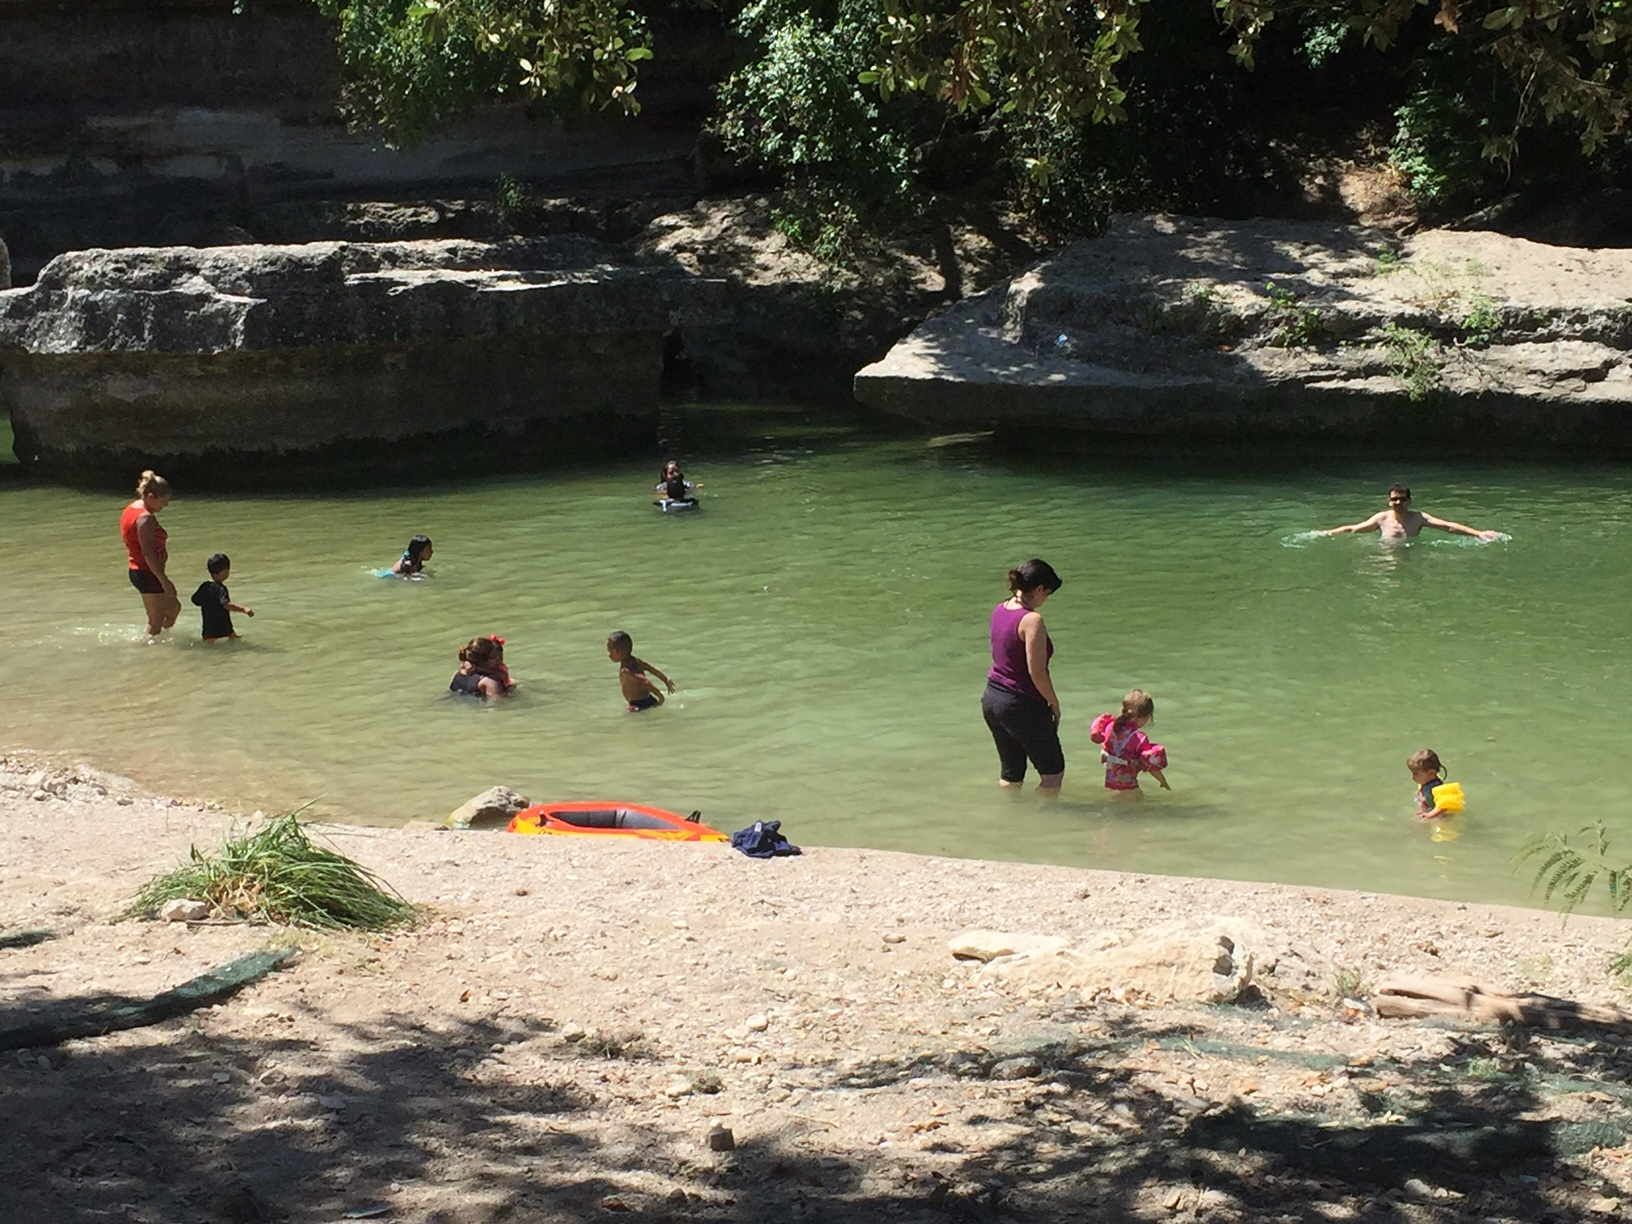 Swimmers in Bull Creek on July 25, 2016_316532